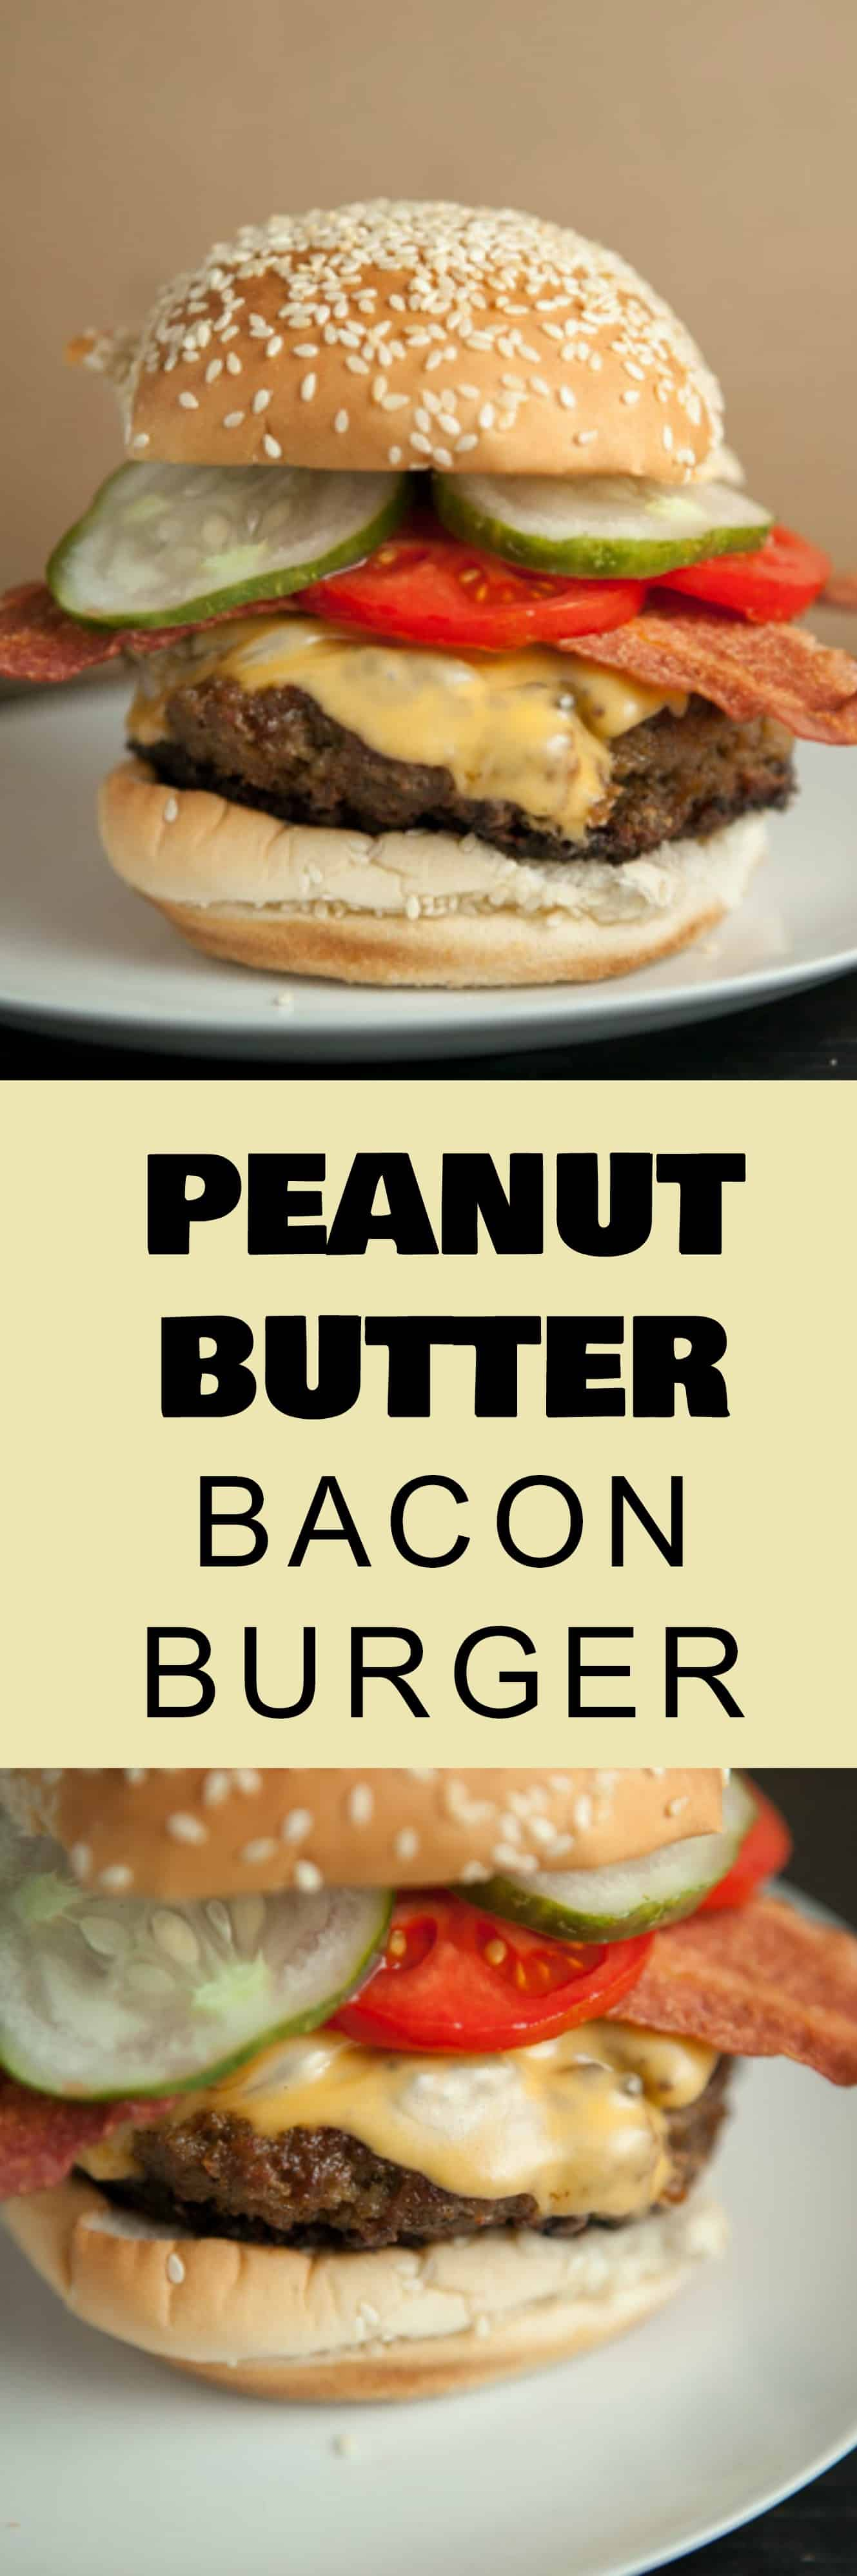 Life changing Peanut Butter Burger recipe!  This healthy burger recipe is easy to make with ground turkey, bacon, cheese and creamy peanut butter.  Give it a try!